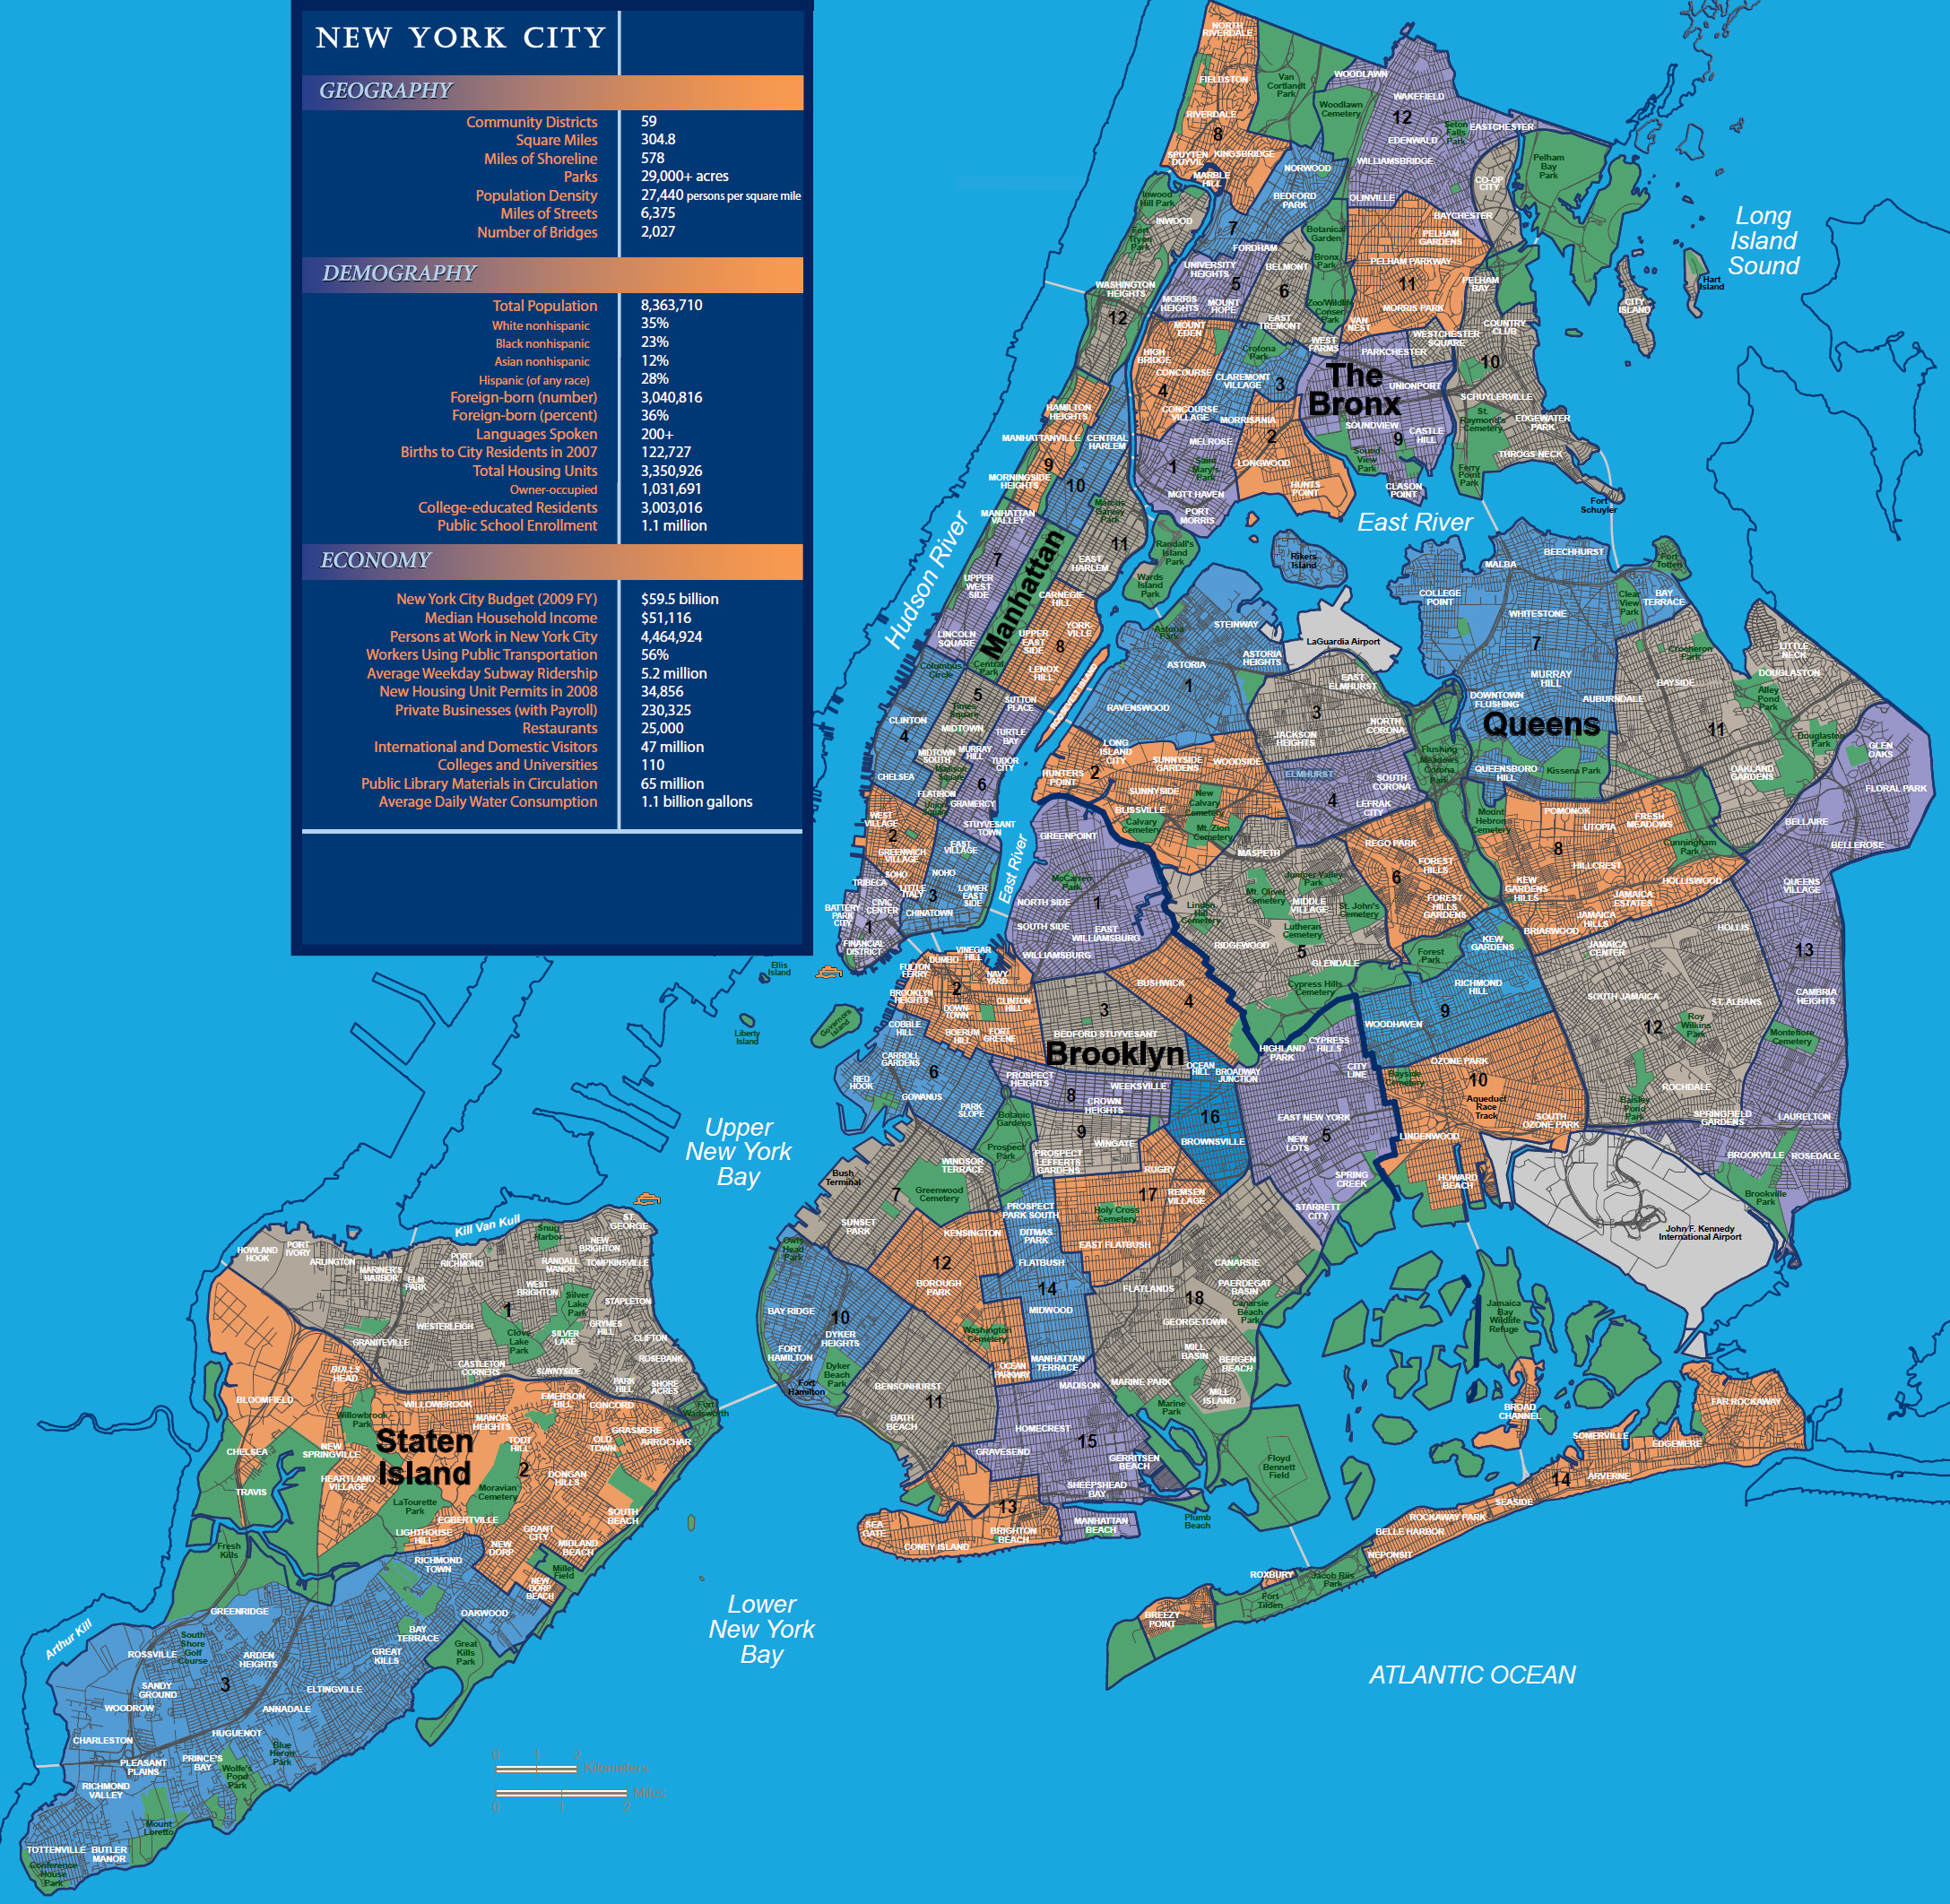 New York City Neighborhoods Map WoD Gotham - New york neighborhood map